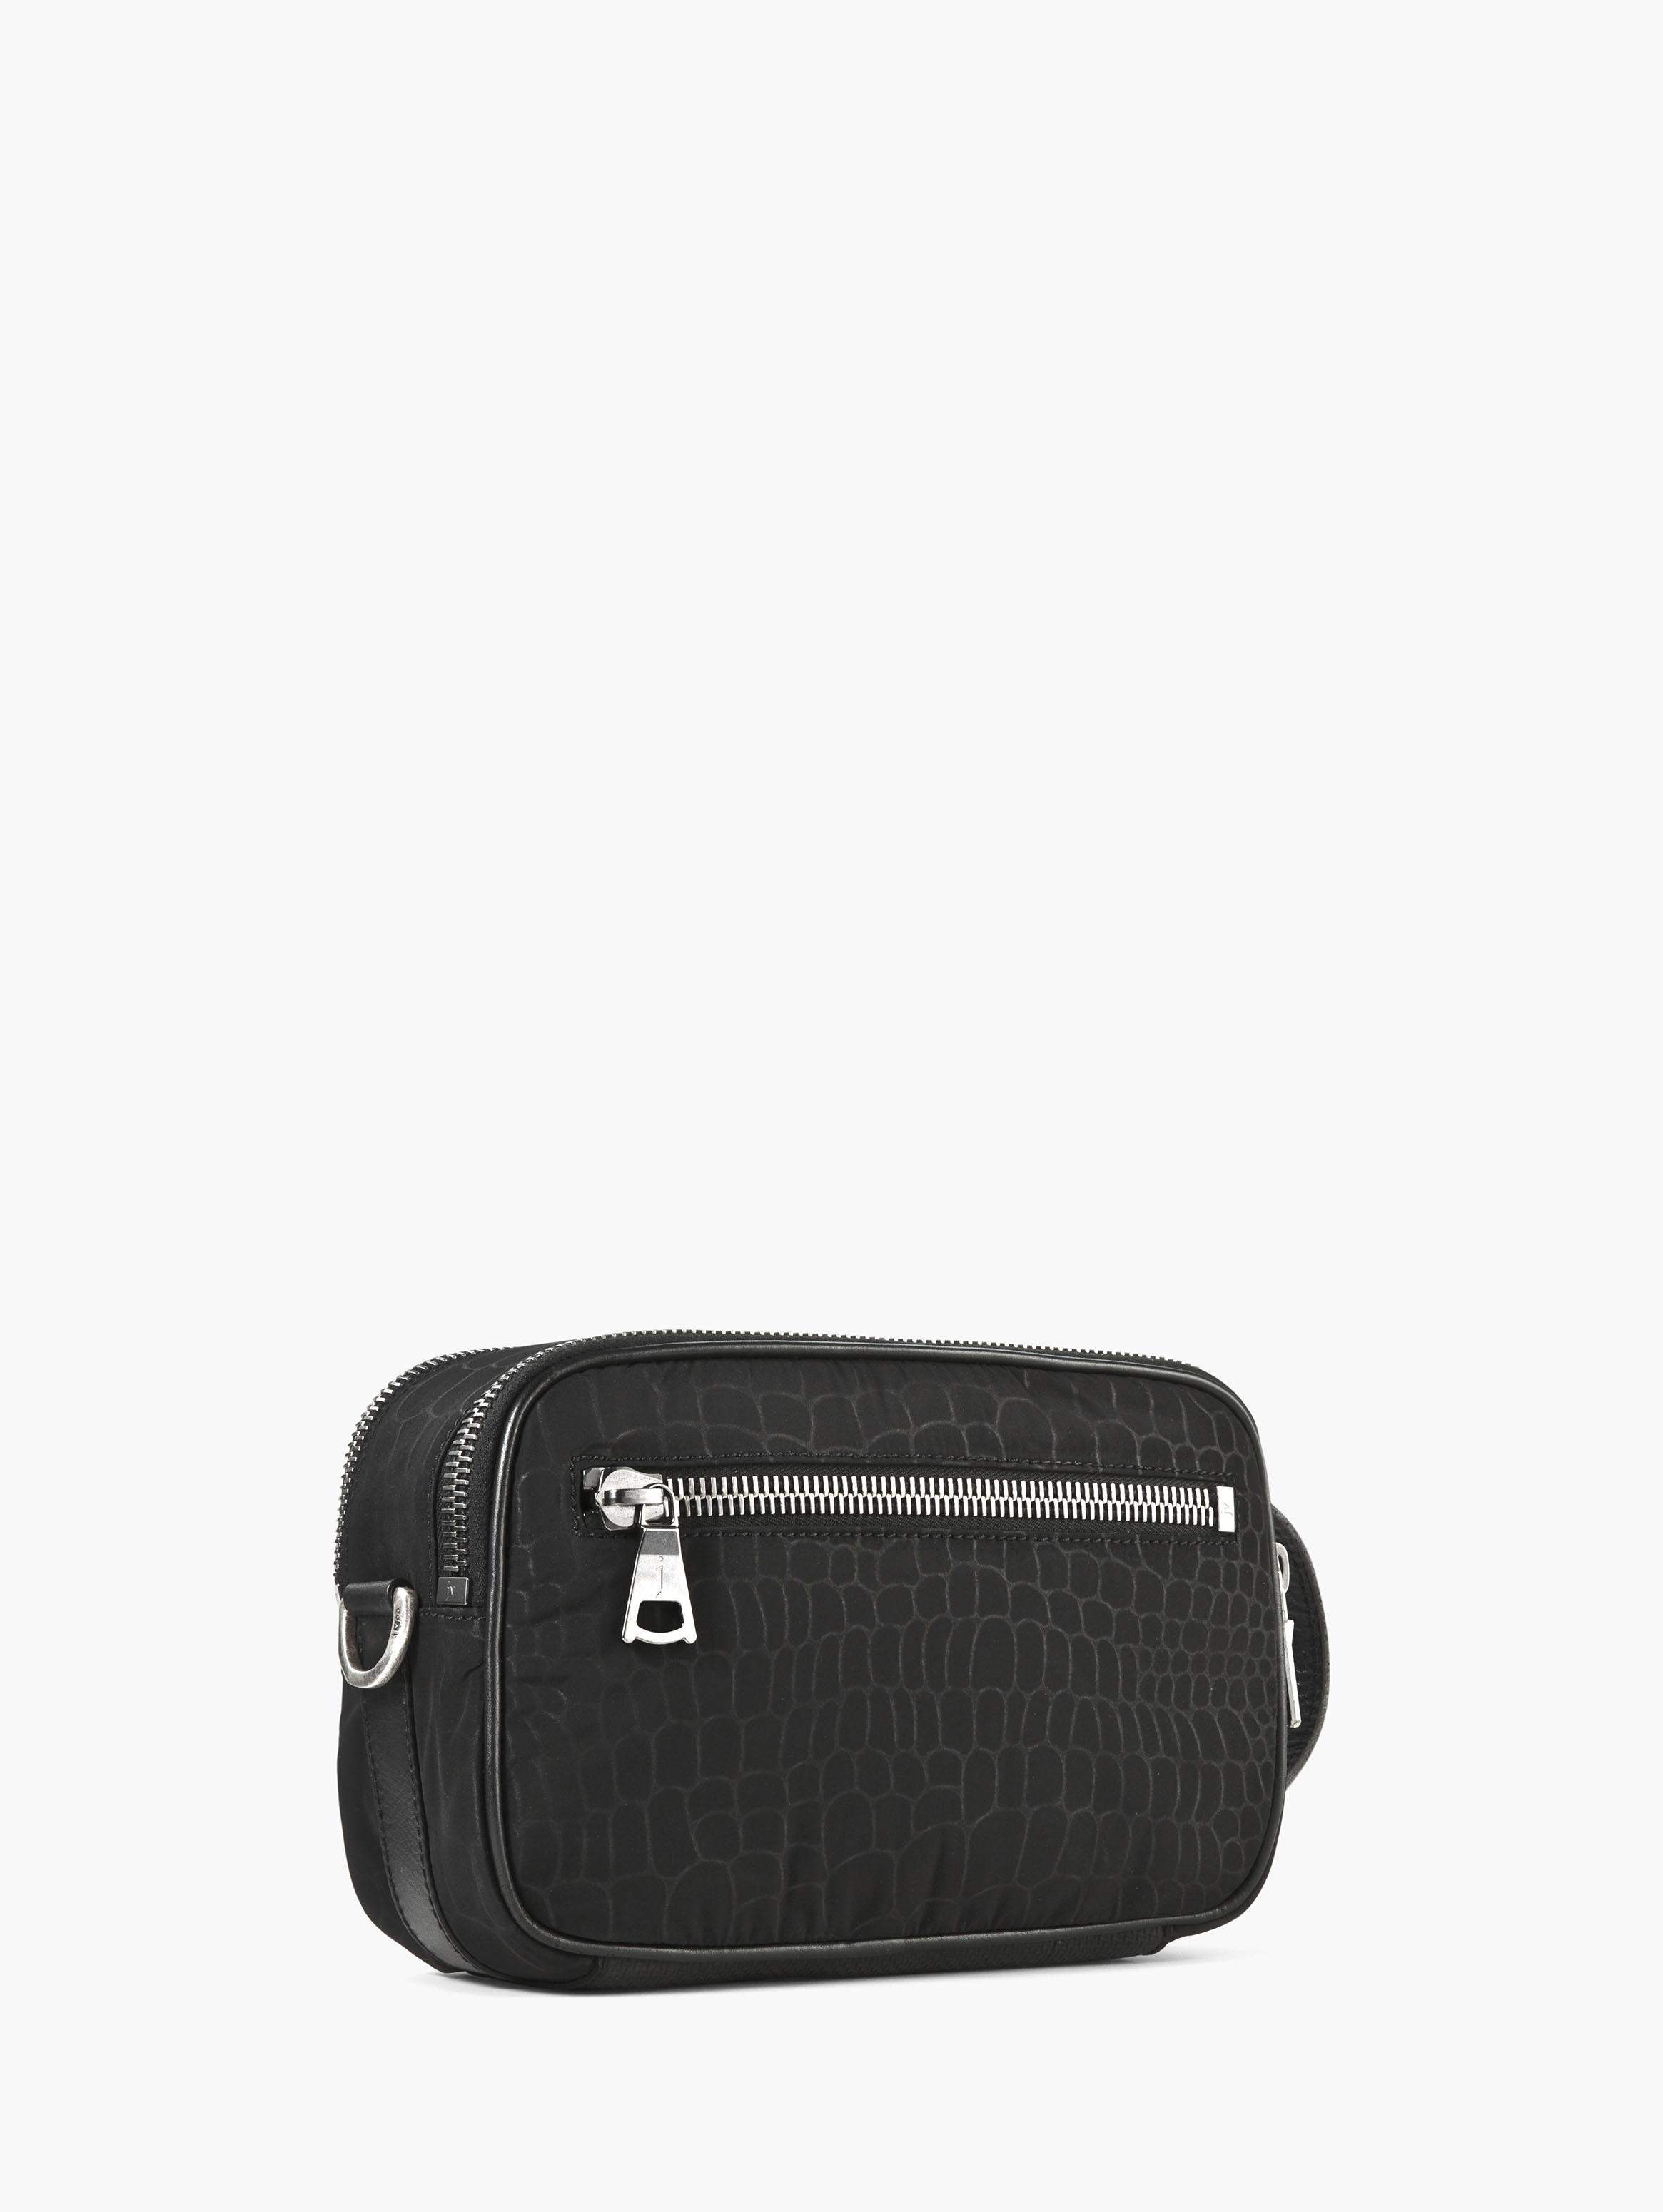 Croc-Embossed Nylon Dopp Kit